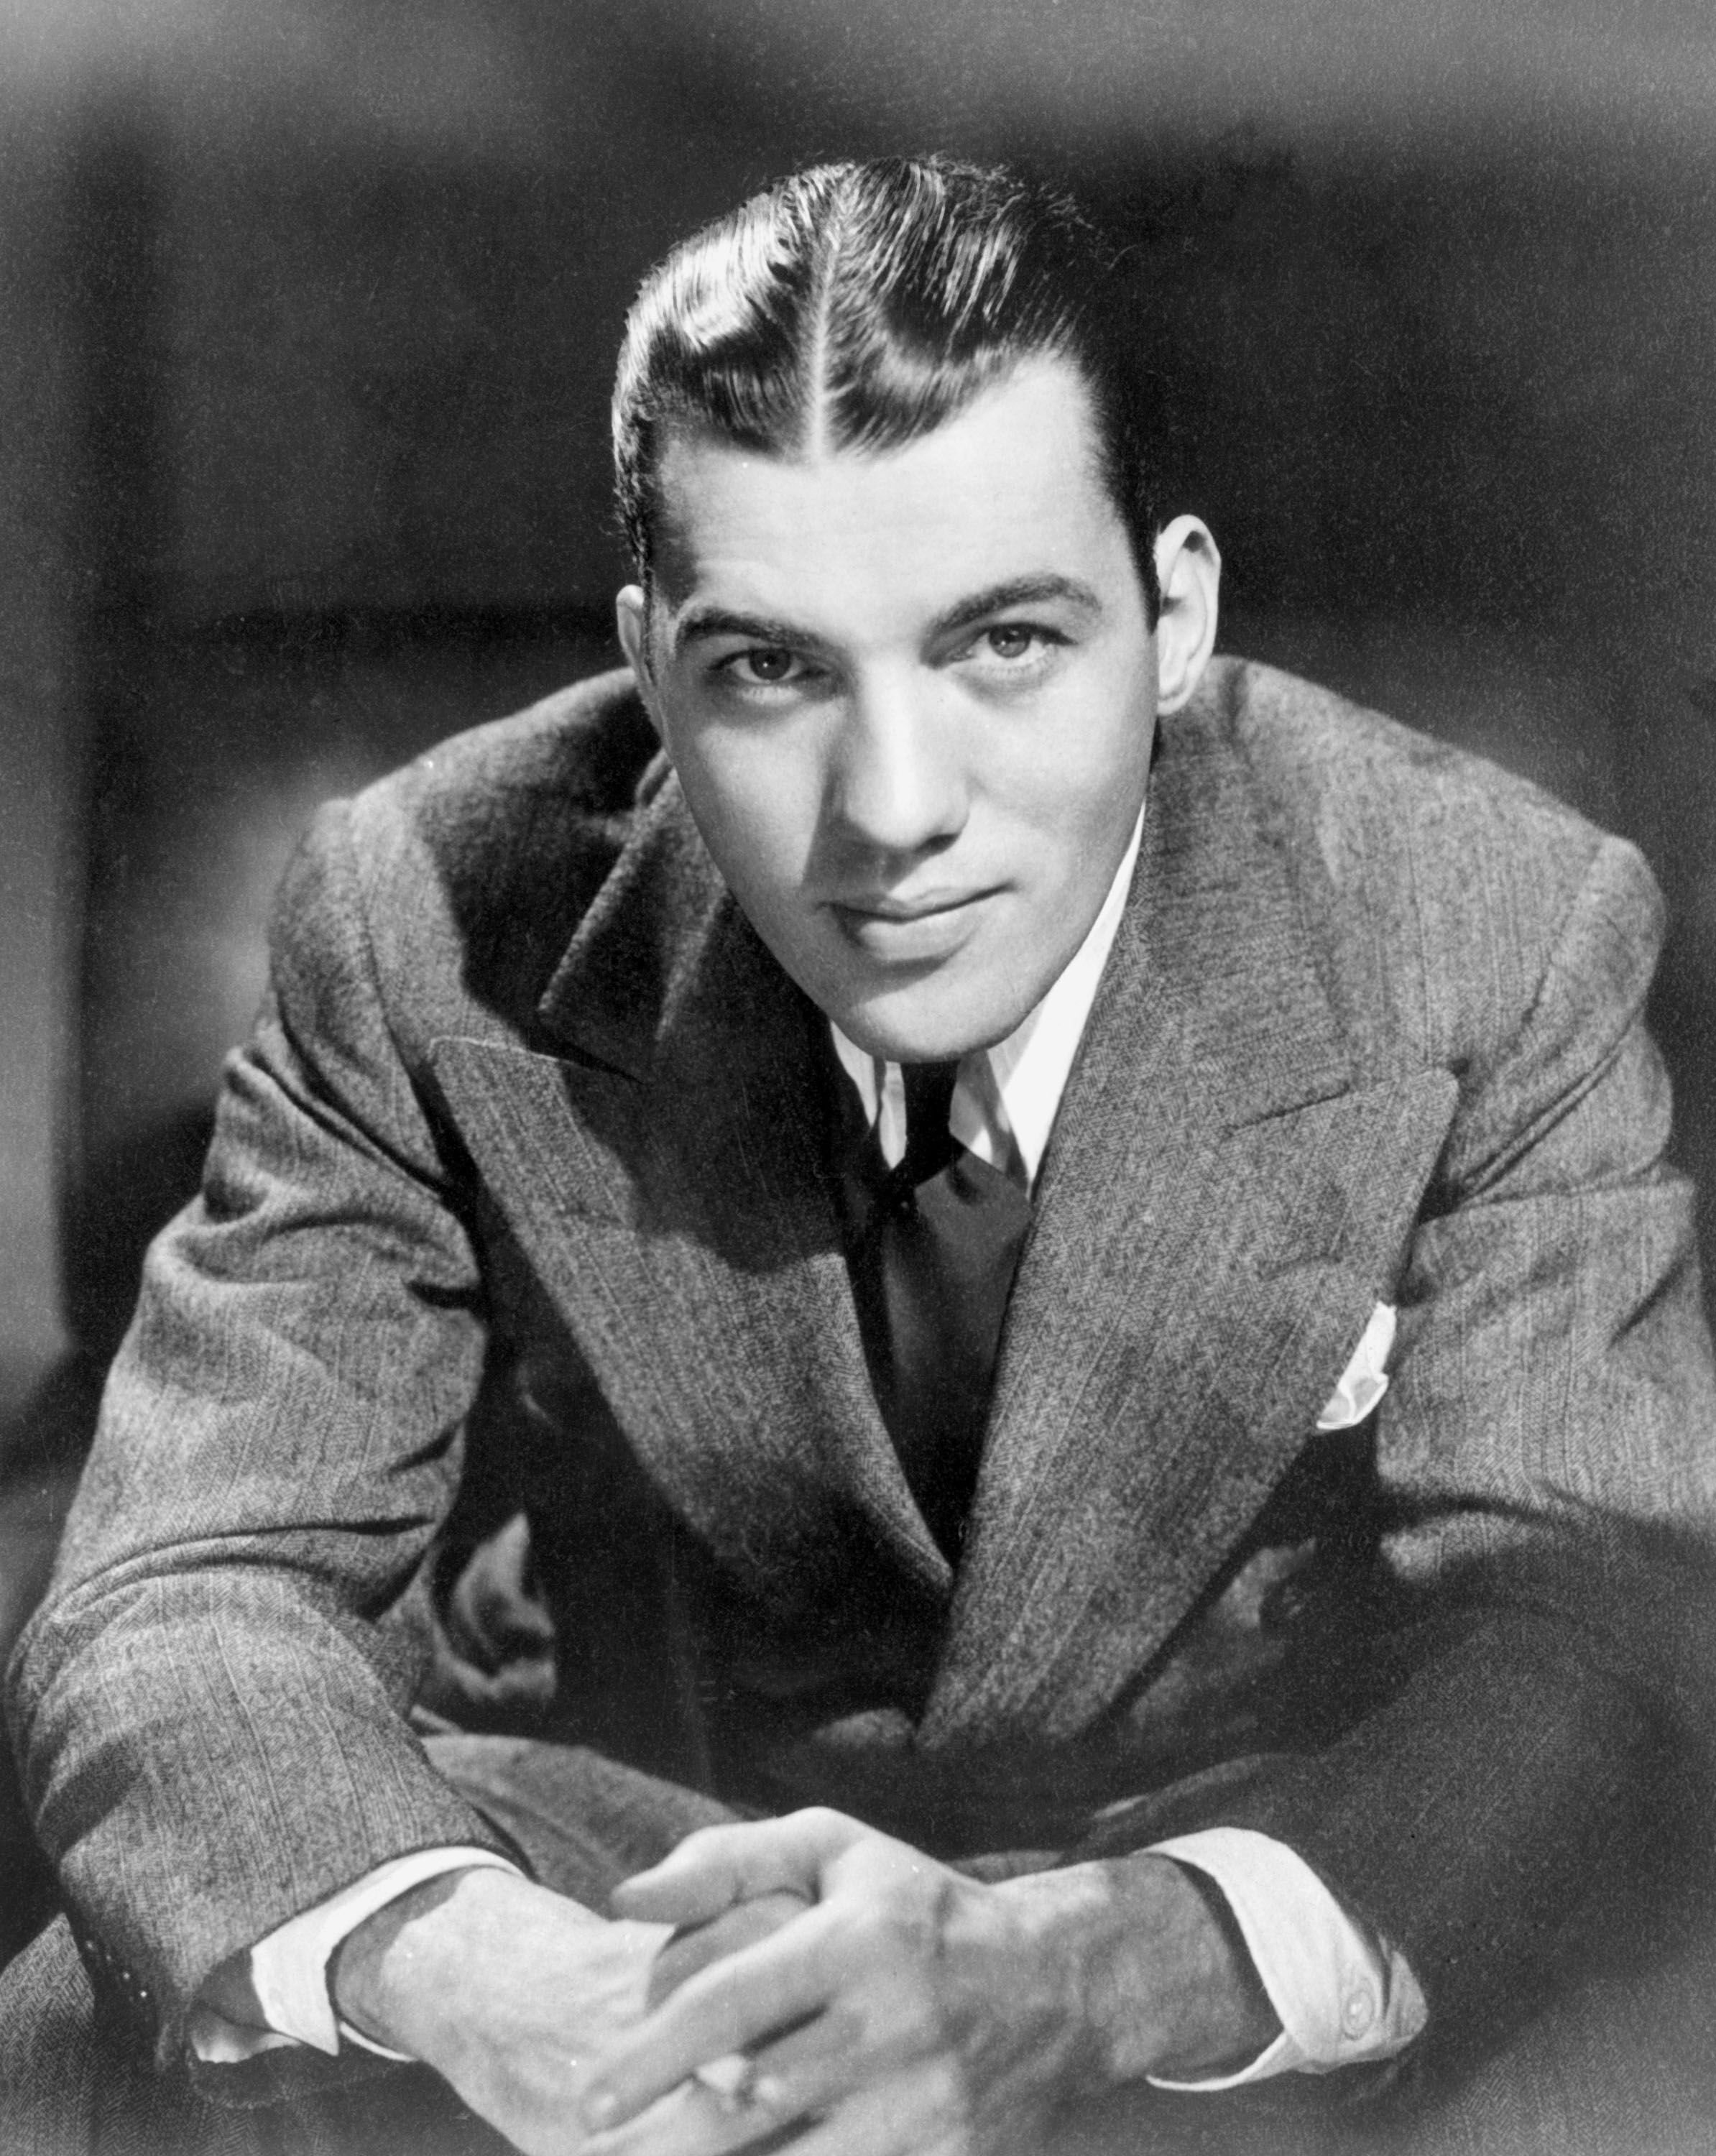 Television variety show host Ed Sullivan poses for a portrait during his career as a journalist in 1946 | Photo: Getty Images